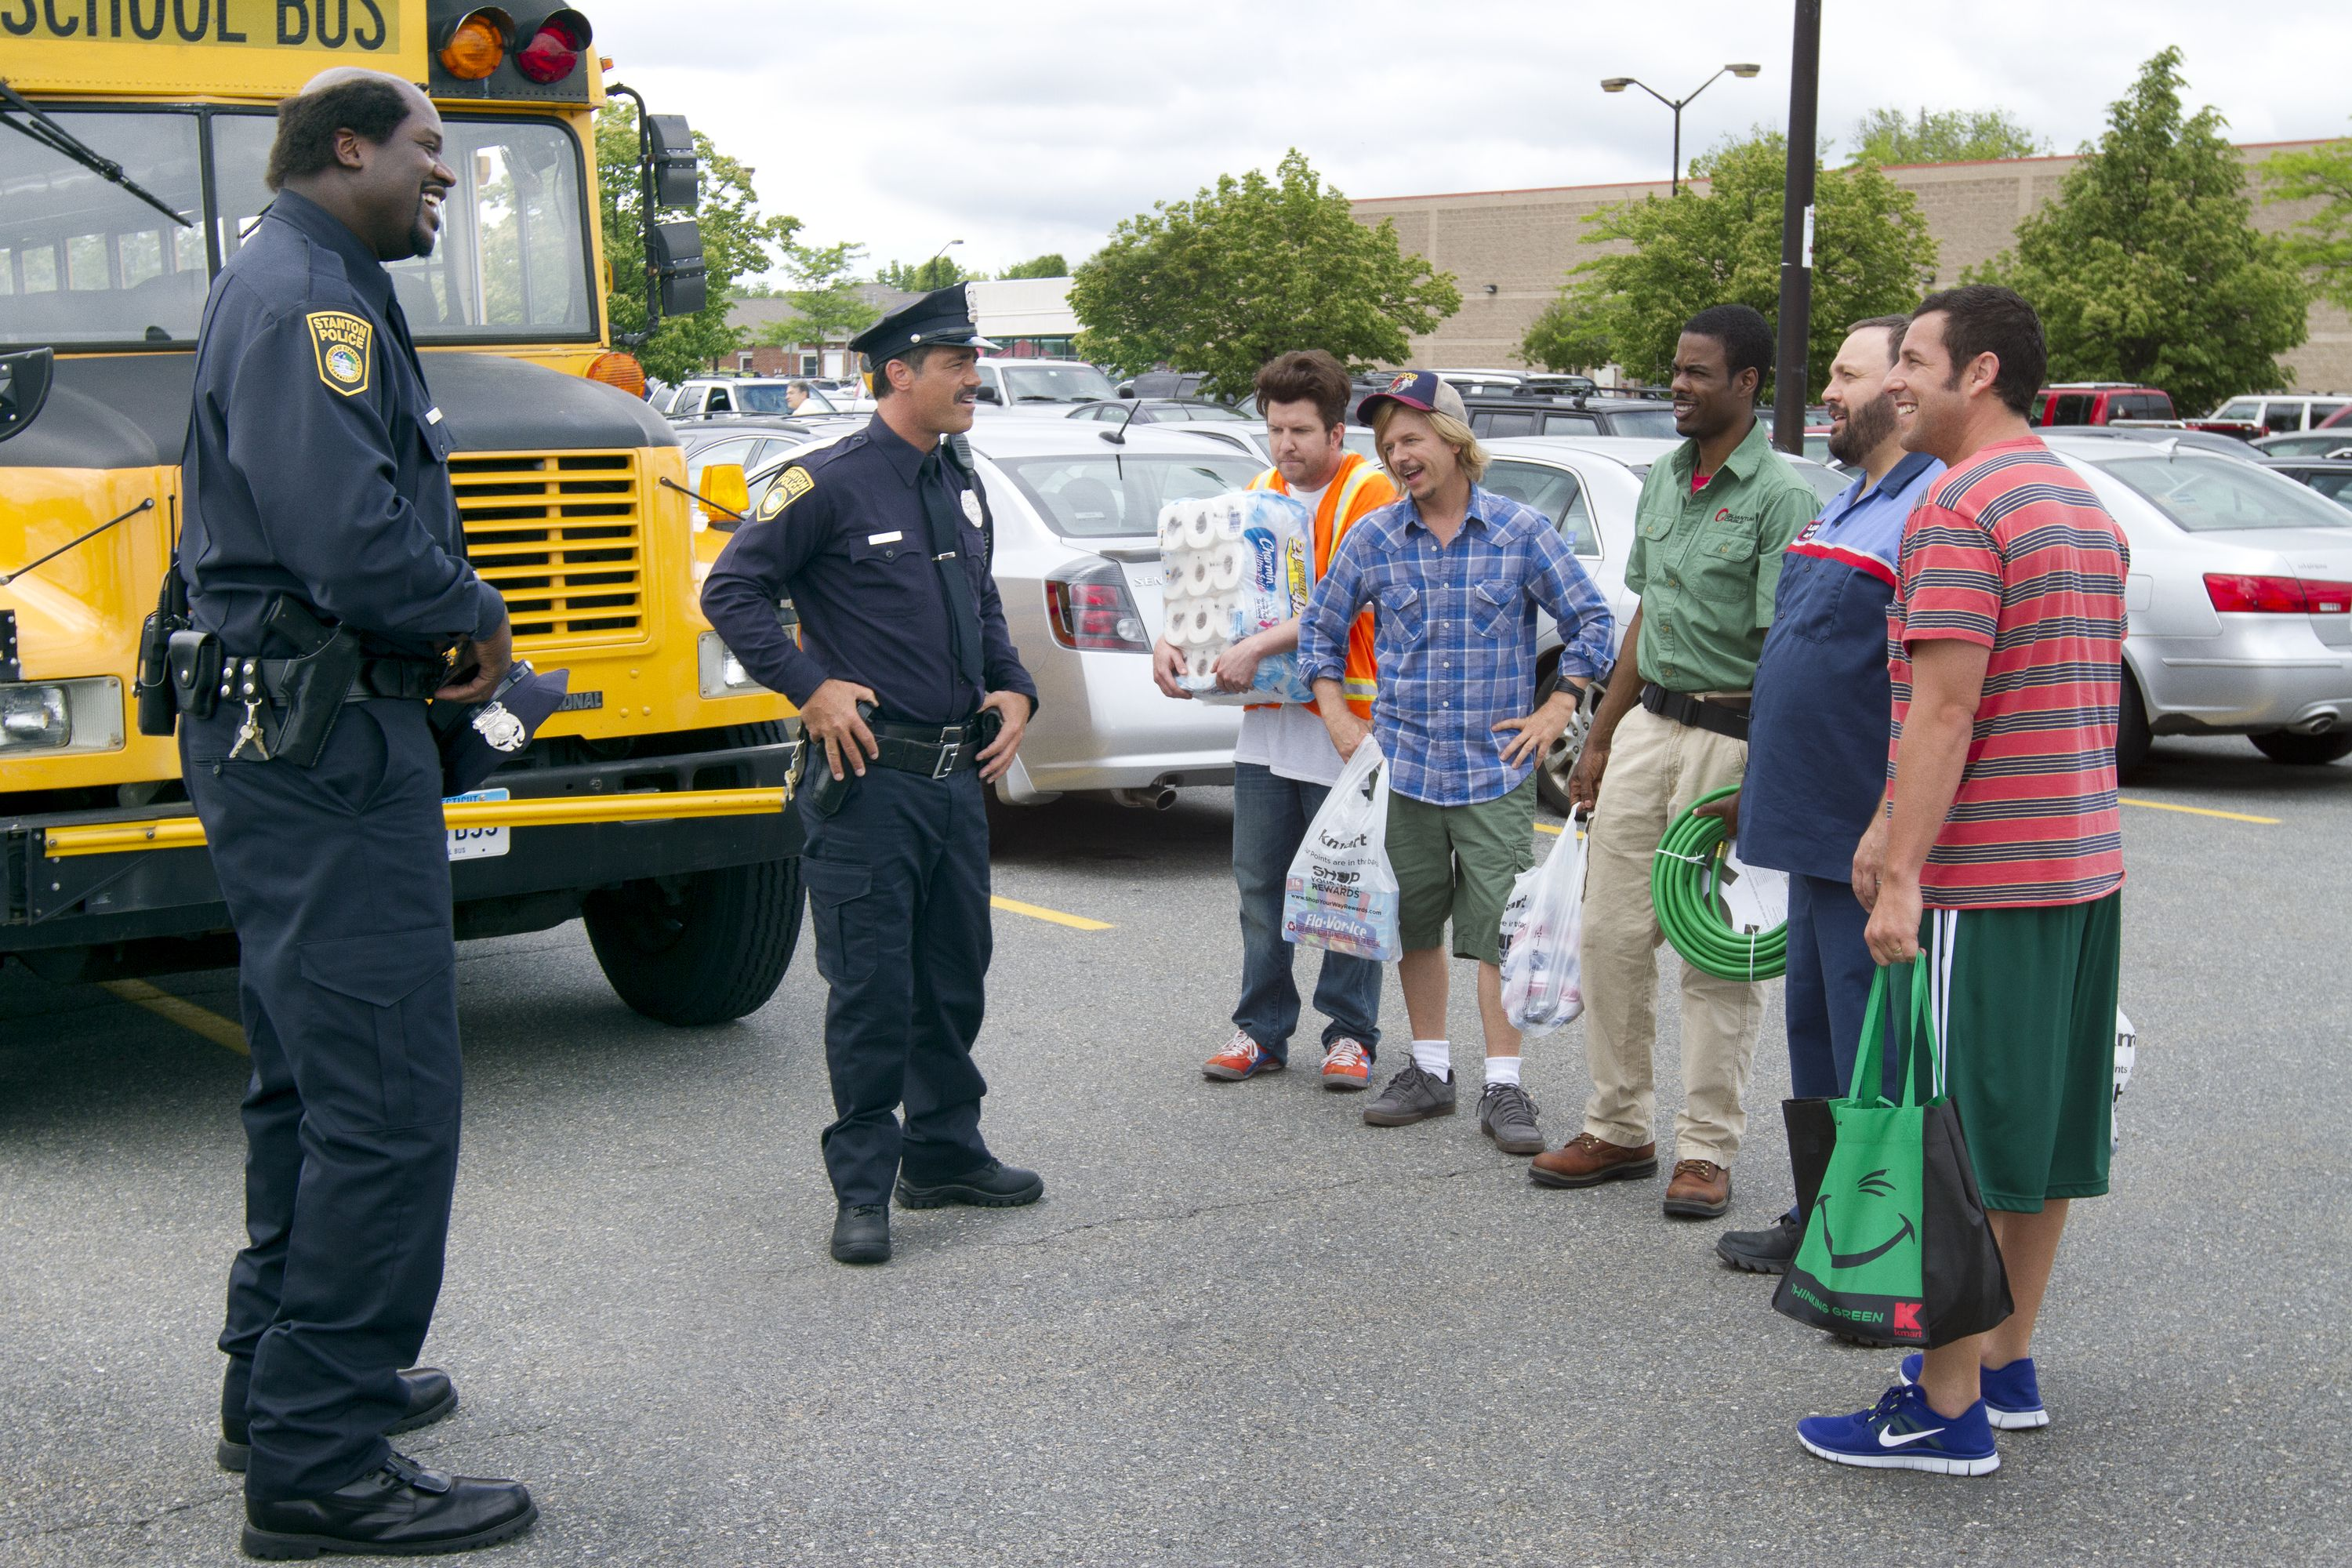 Shaquille O Neal Is Officer Fluzoo In Grown Ups 2 With Images